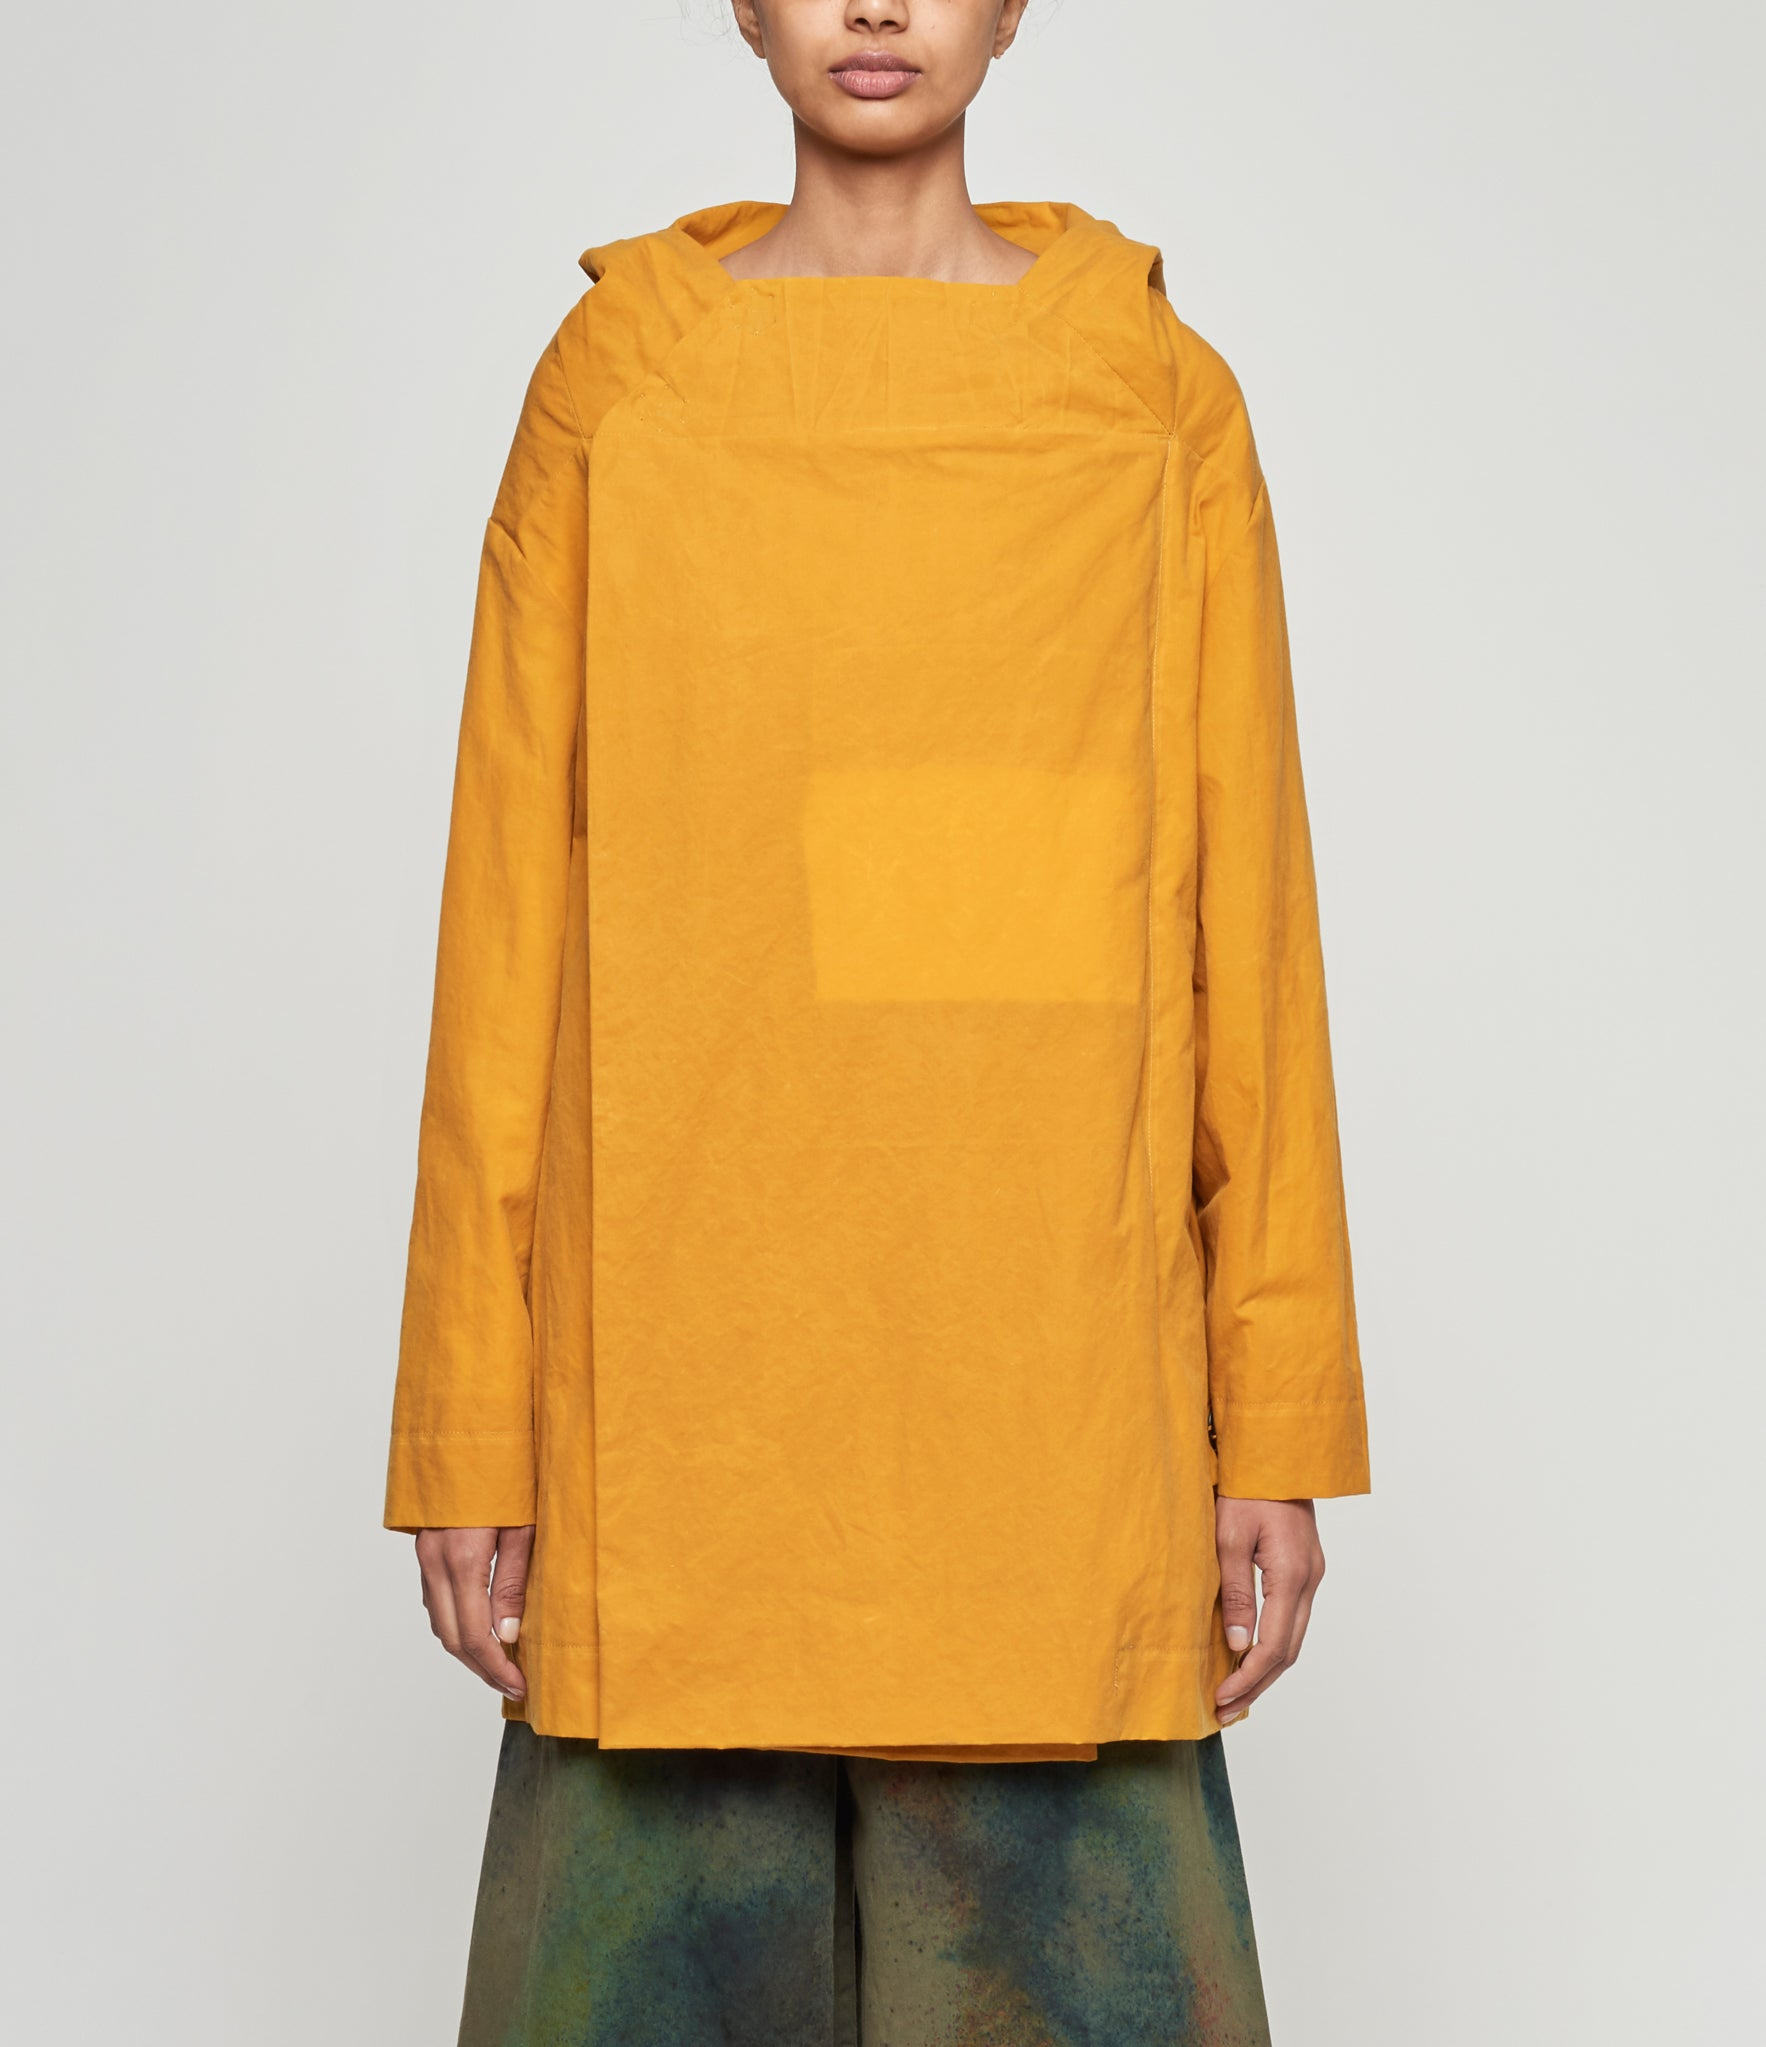 Toogood The Beekeeper Mustard Waxed Jacket